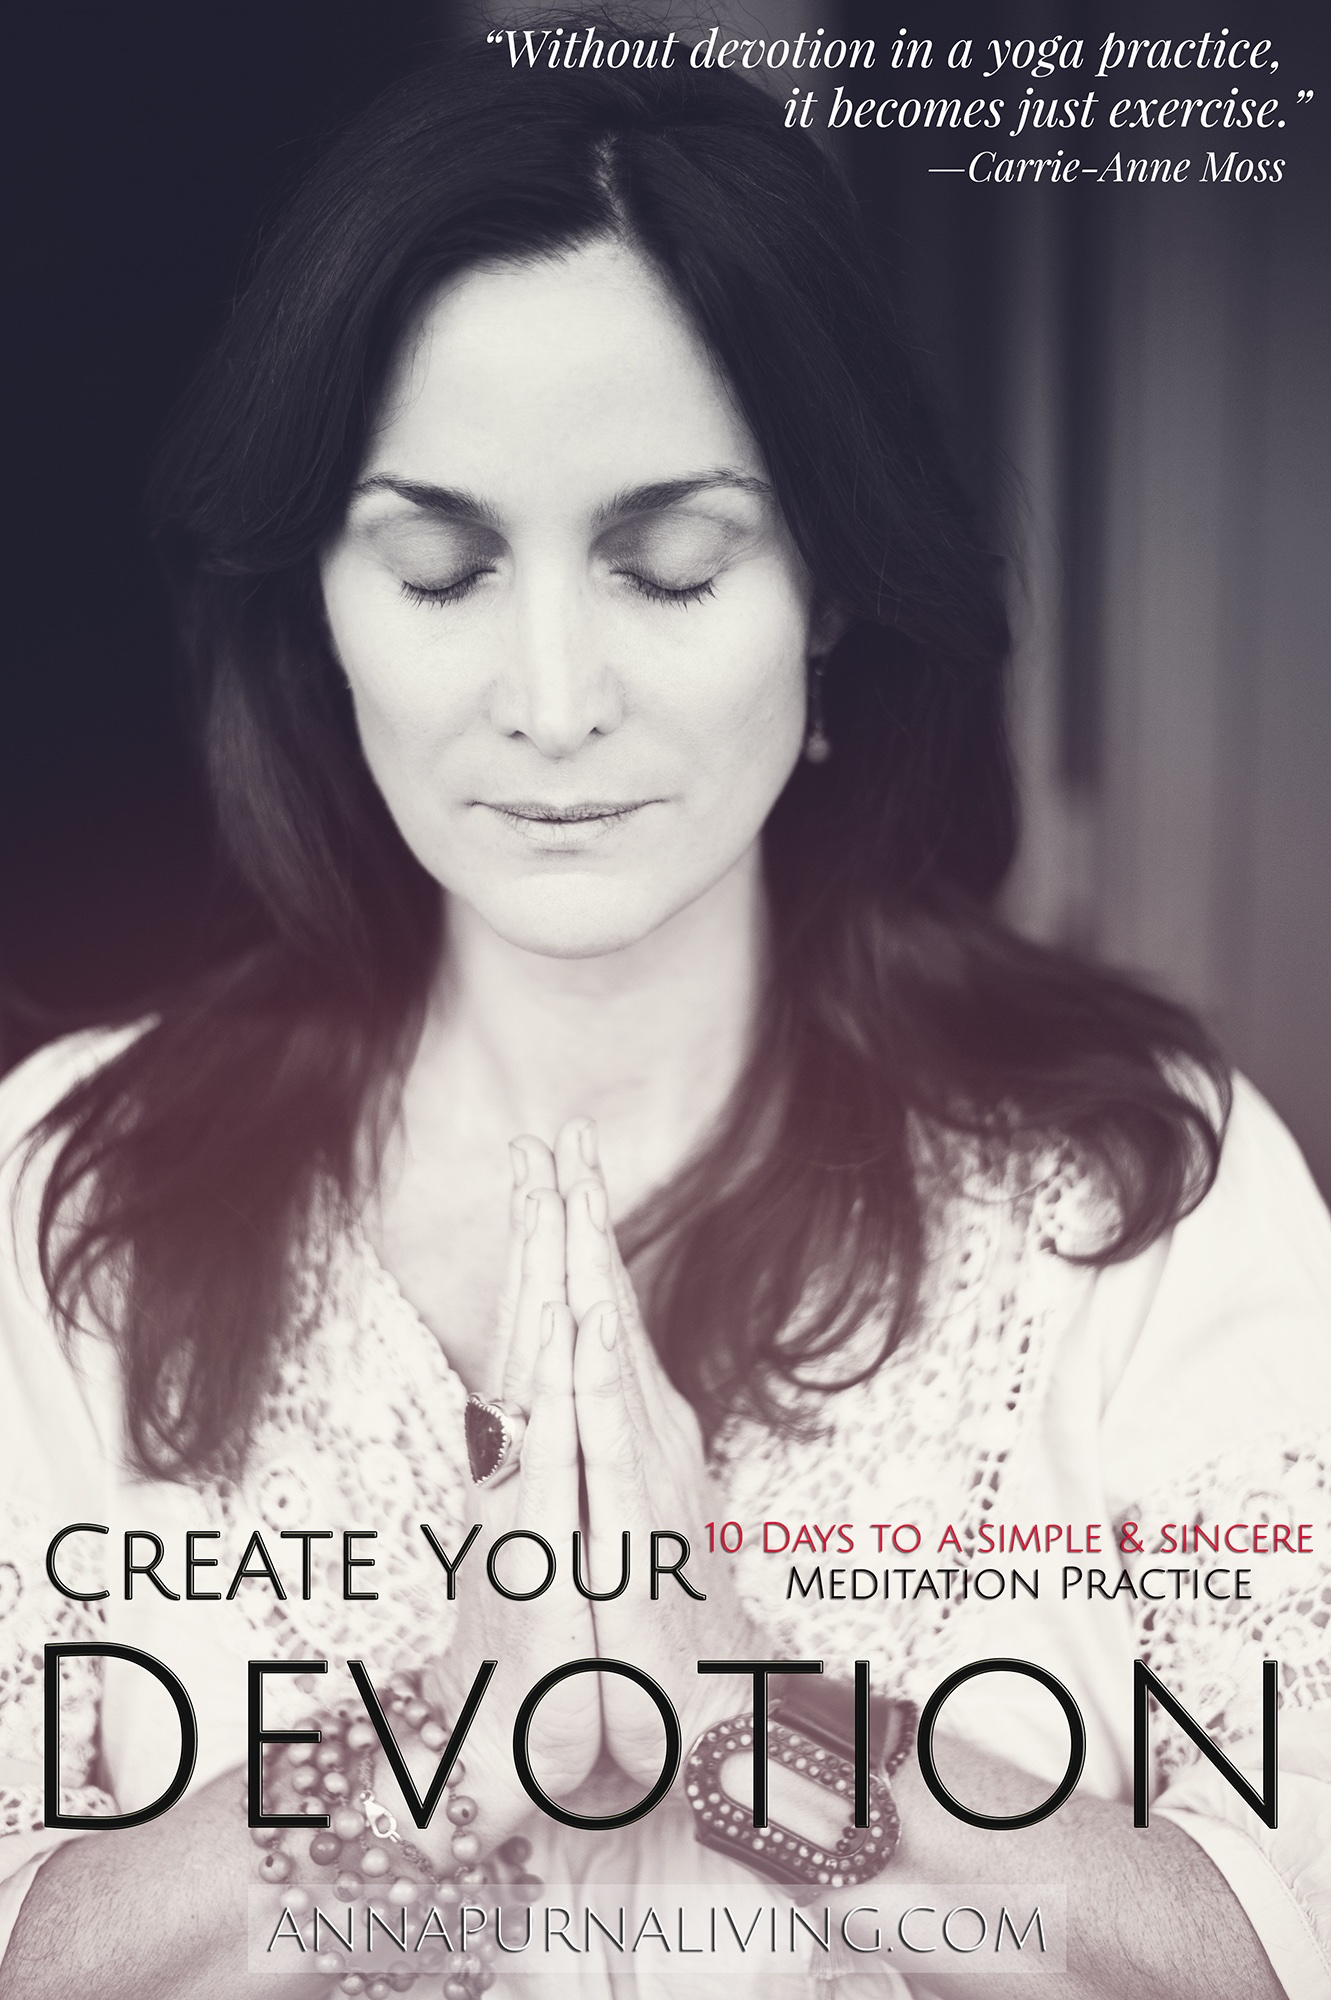 10 Days to a Simple and Sincere Meditation Practice by Carrie Anne Moss via AnnapurnaLiving.com